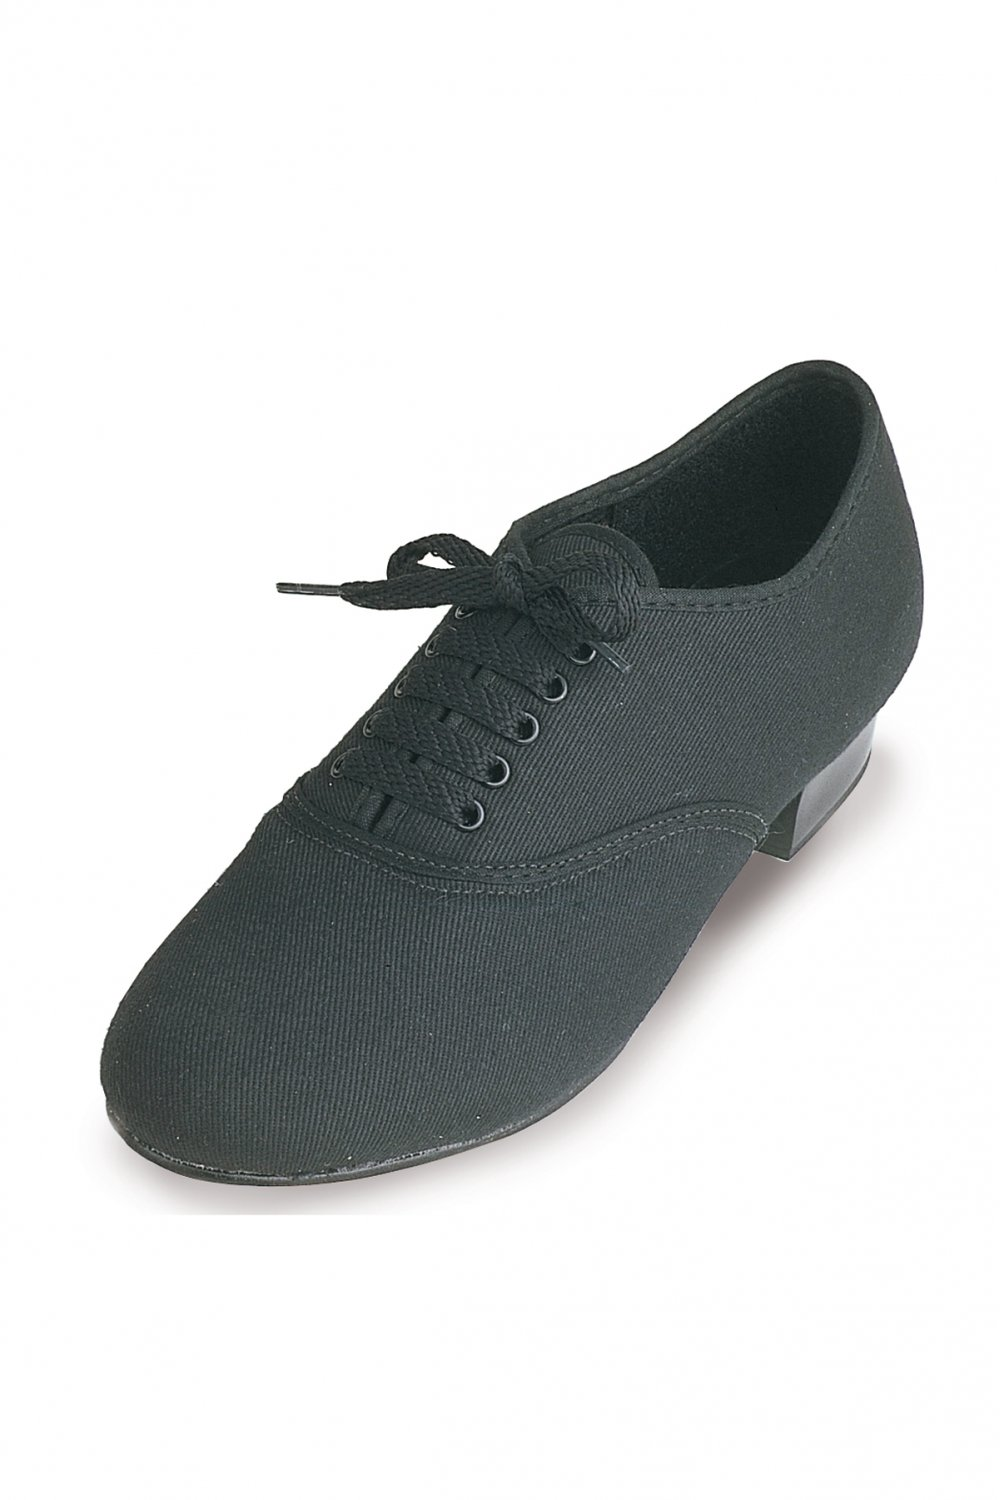 all sizes Mens Boys Black Oxford low heel canvas Tap Shoes